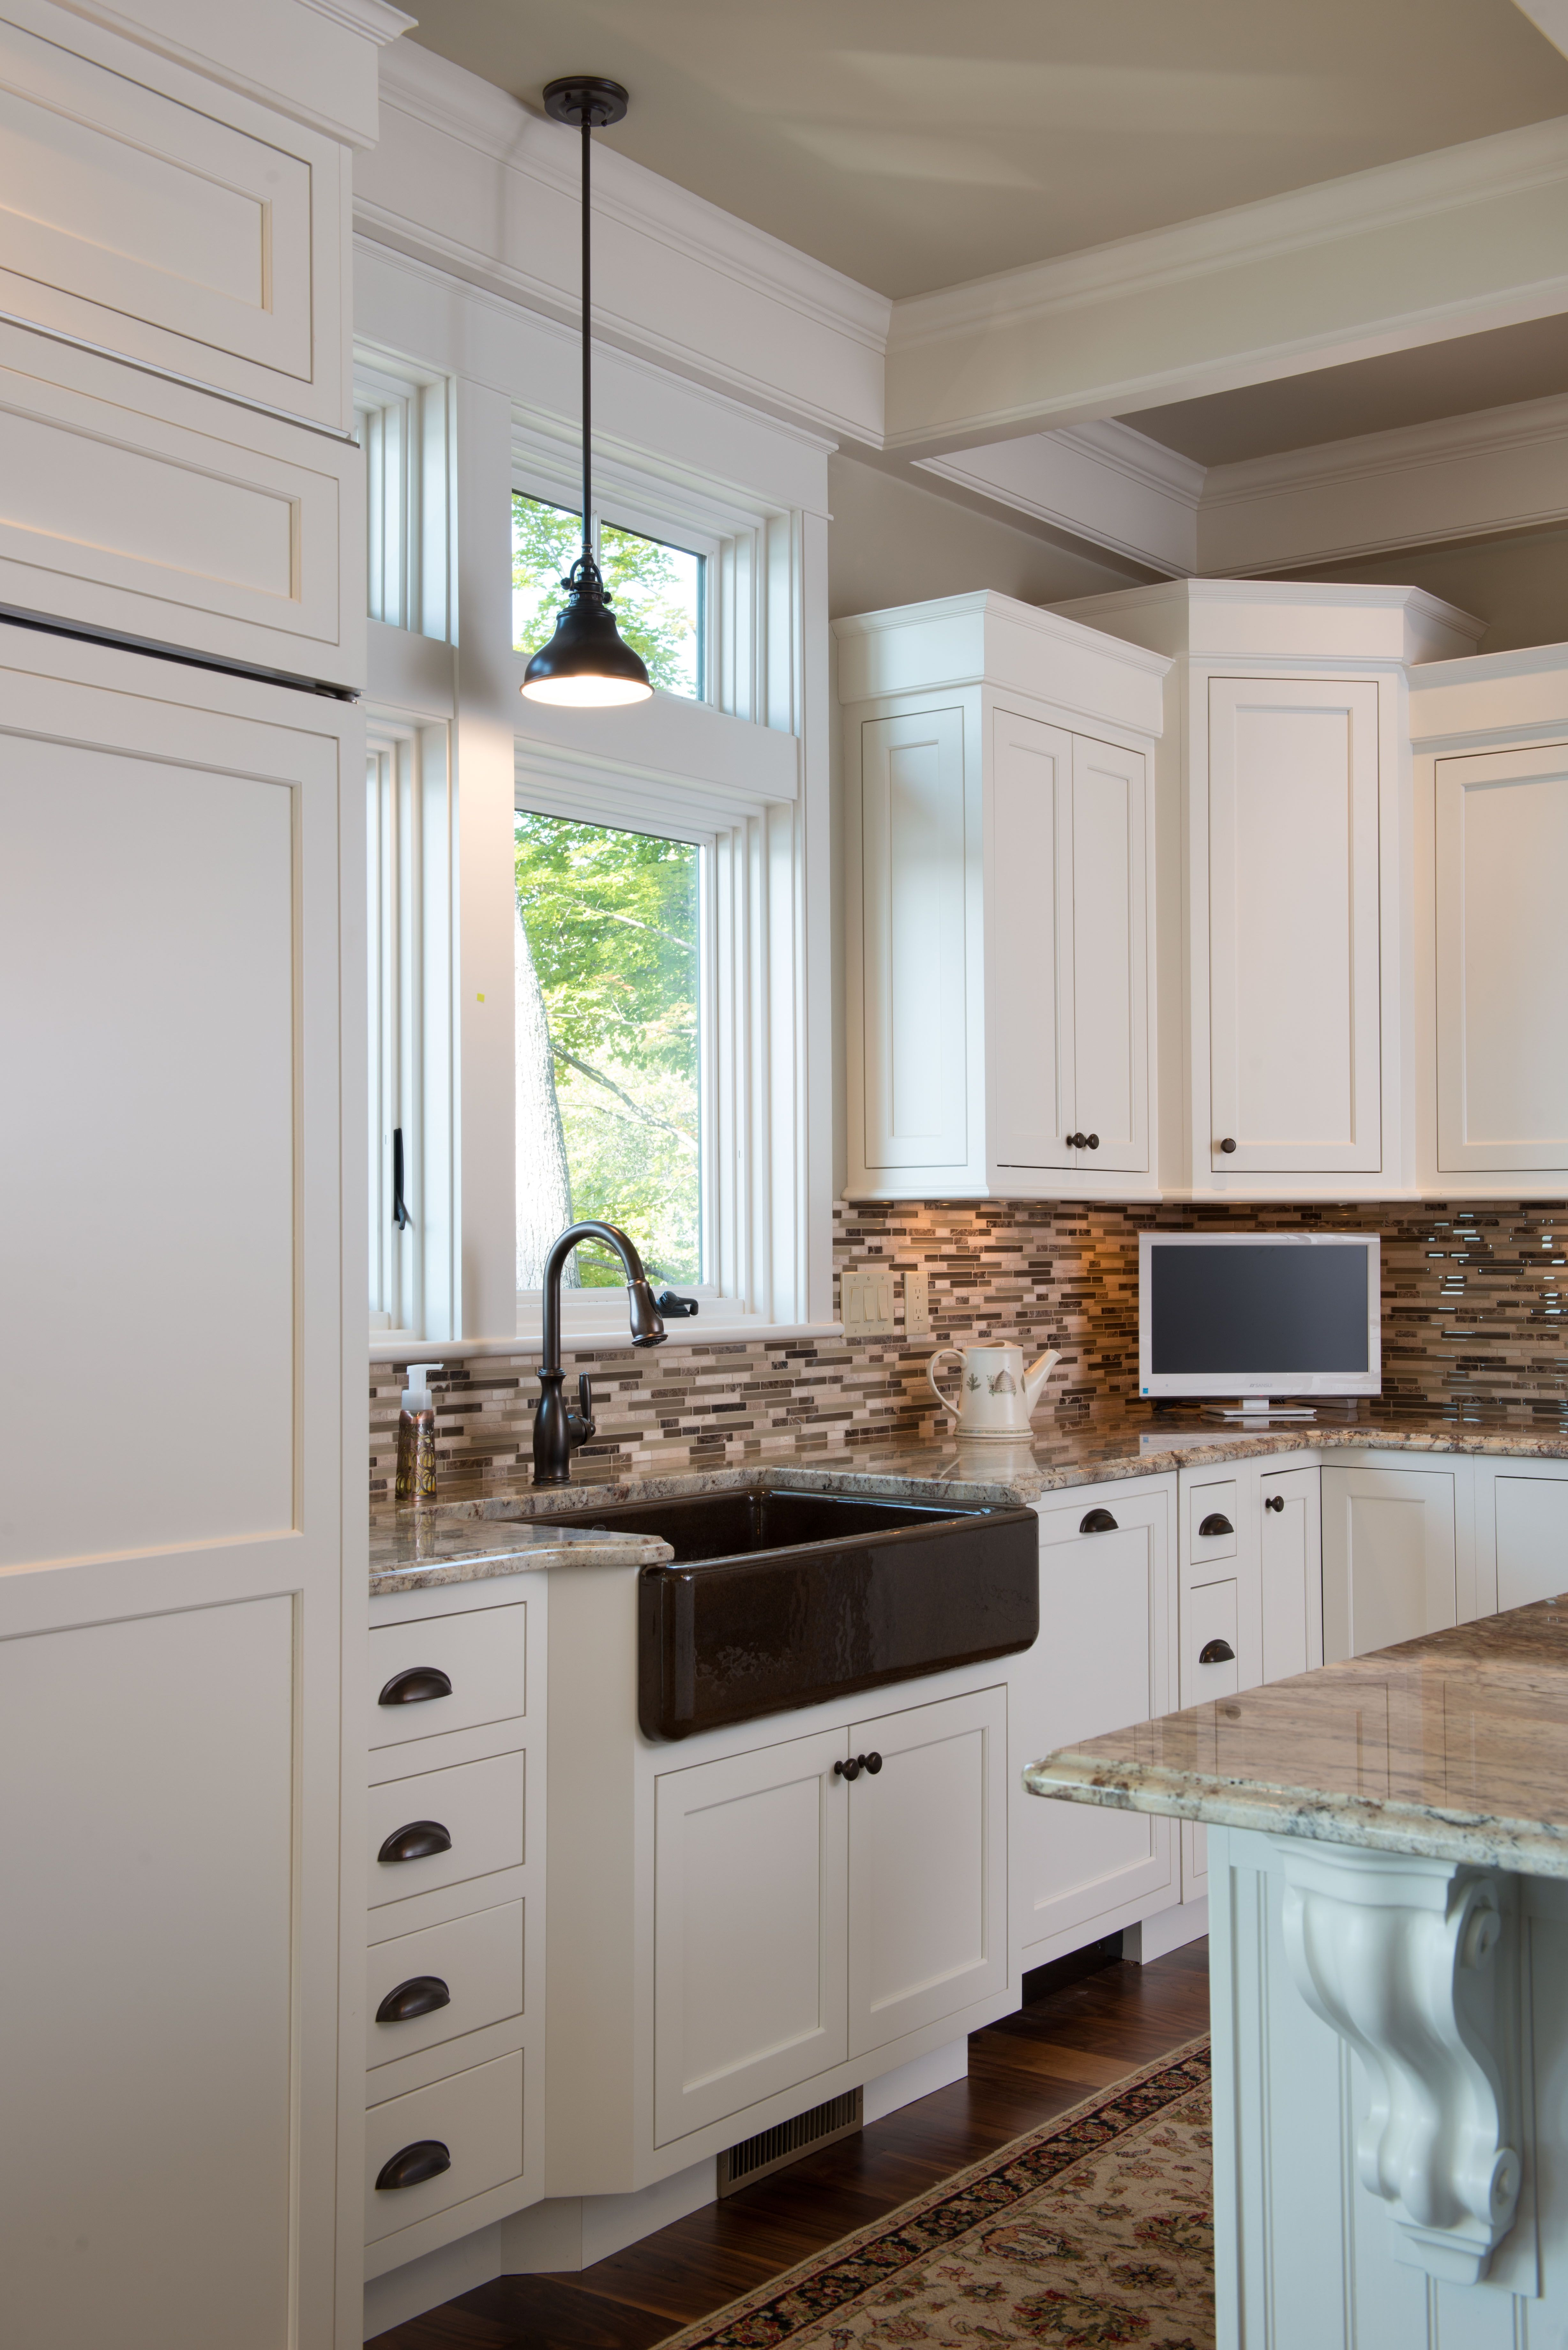 Candlelight Cabinets By Cargill Construction Beautiful Kitchens Kitchen Cabinets Kitchen